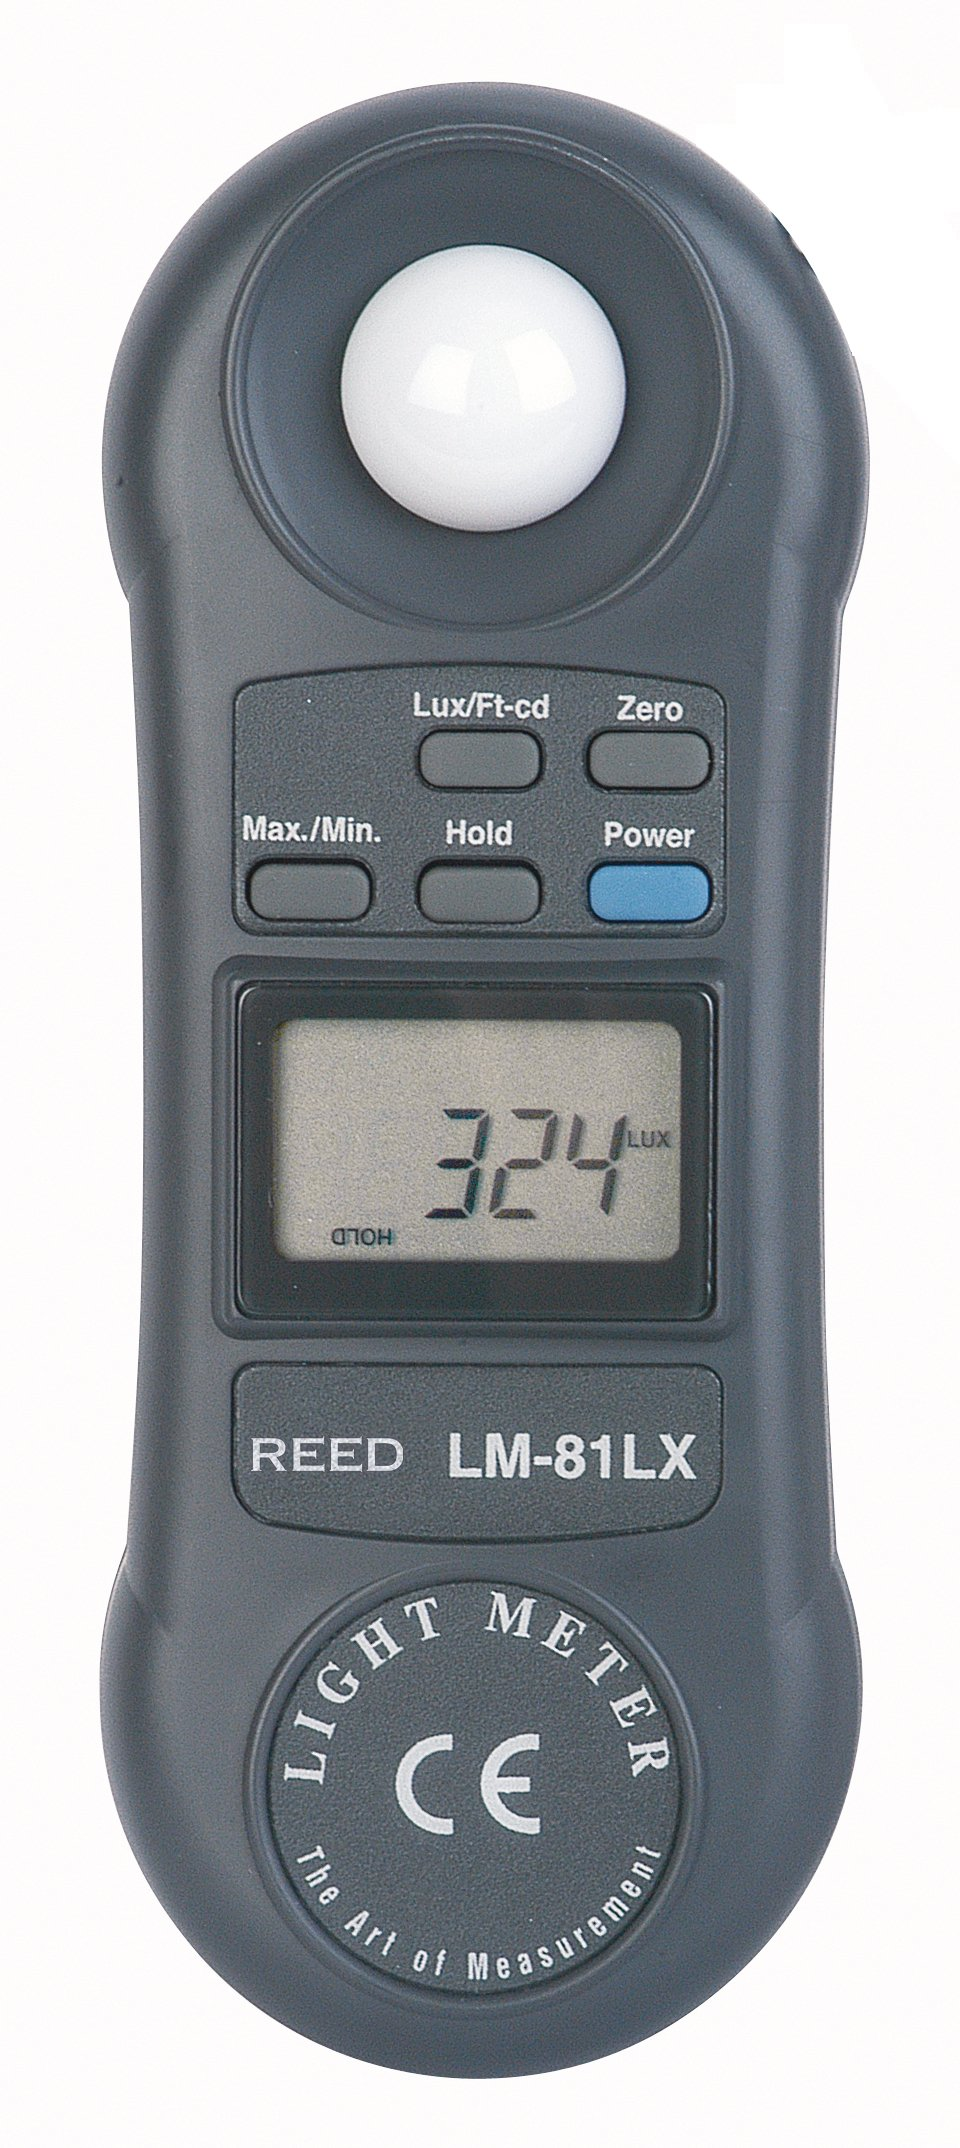 REED Instruments LM-81LX Compact Light Meter, 20,000 Lux / 2,000 Foot Candles (Fc) by REED Instruments